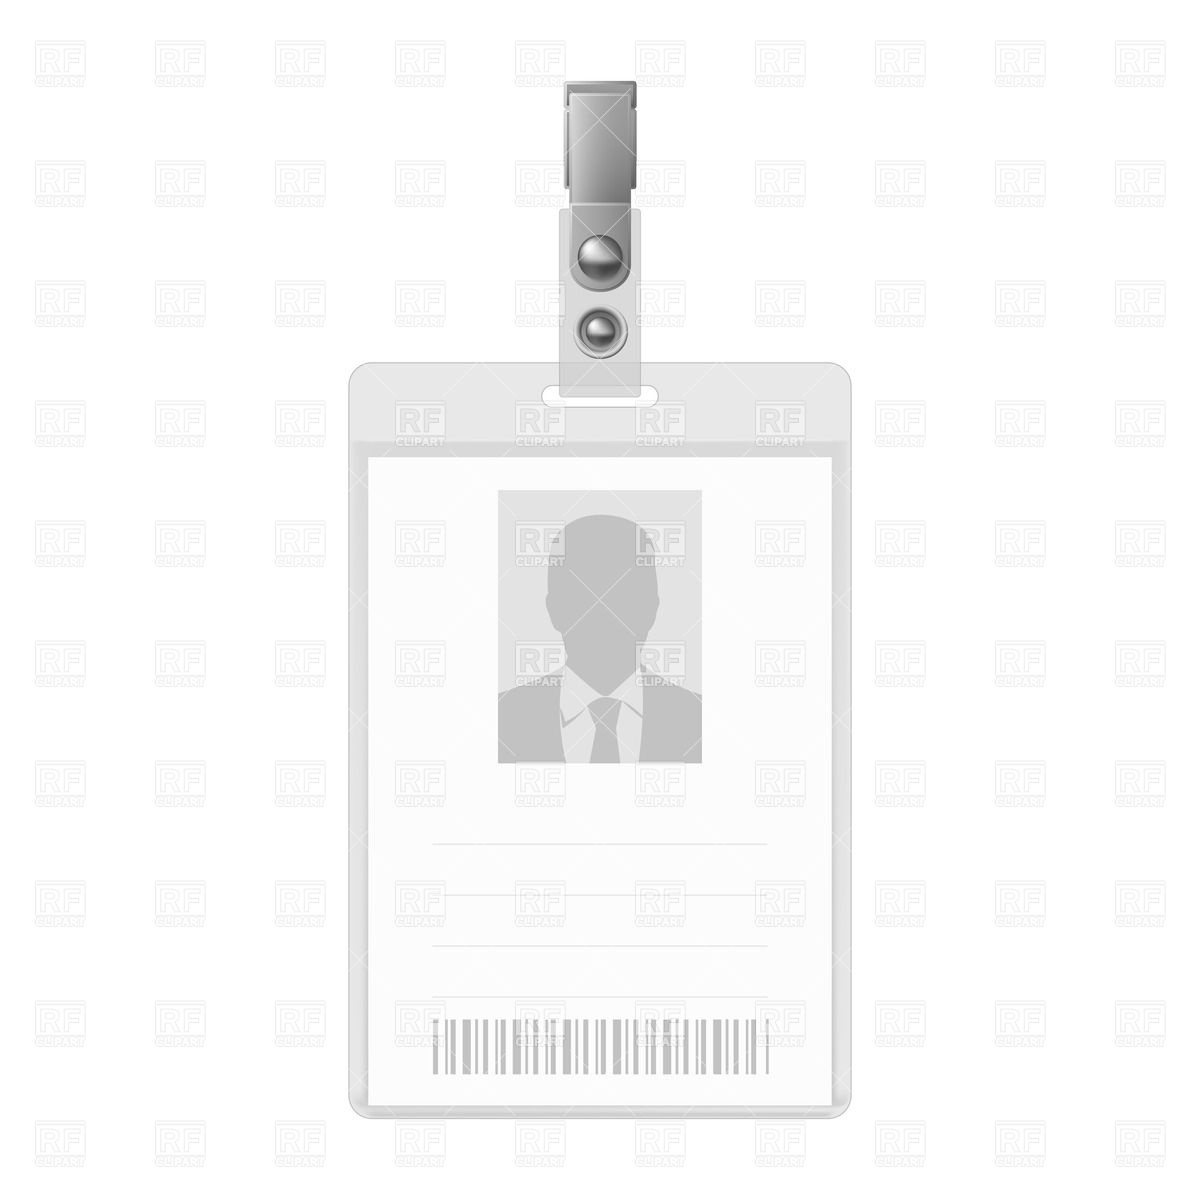 Blank . Barcode clipart royalty free